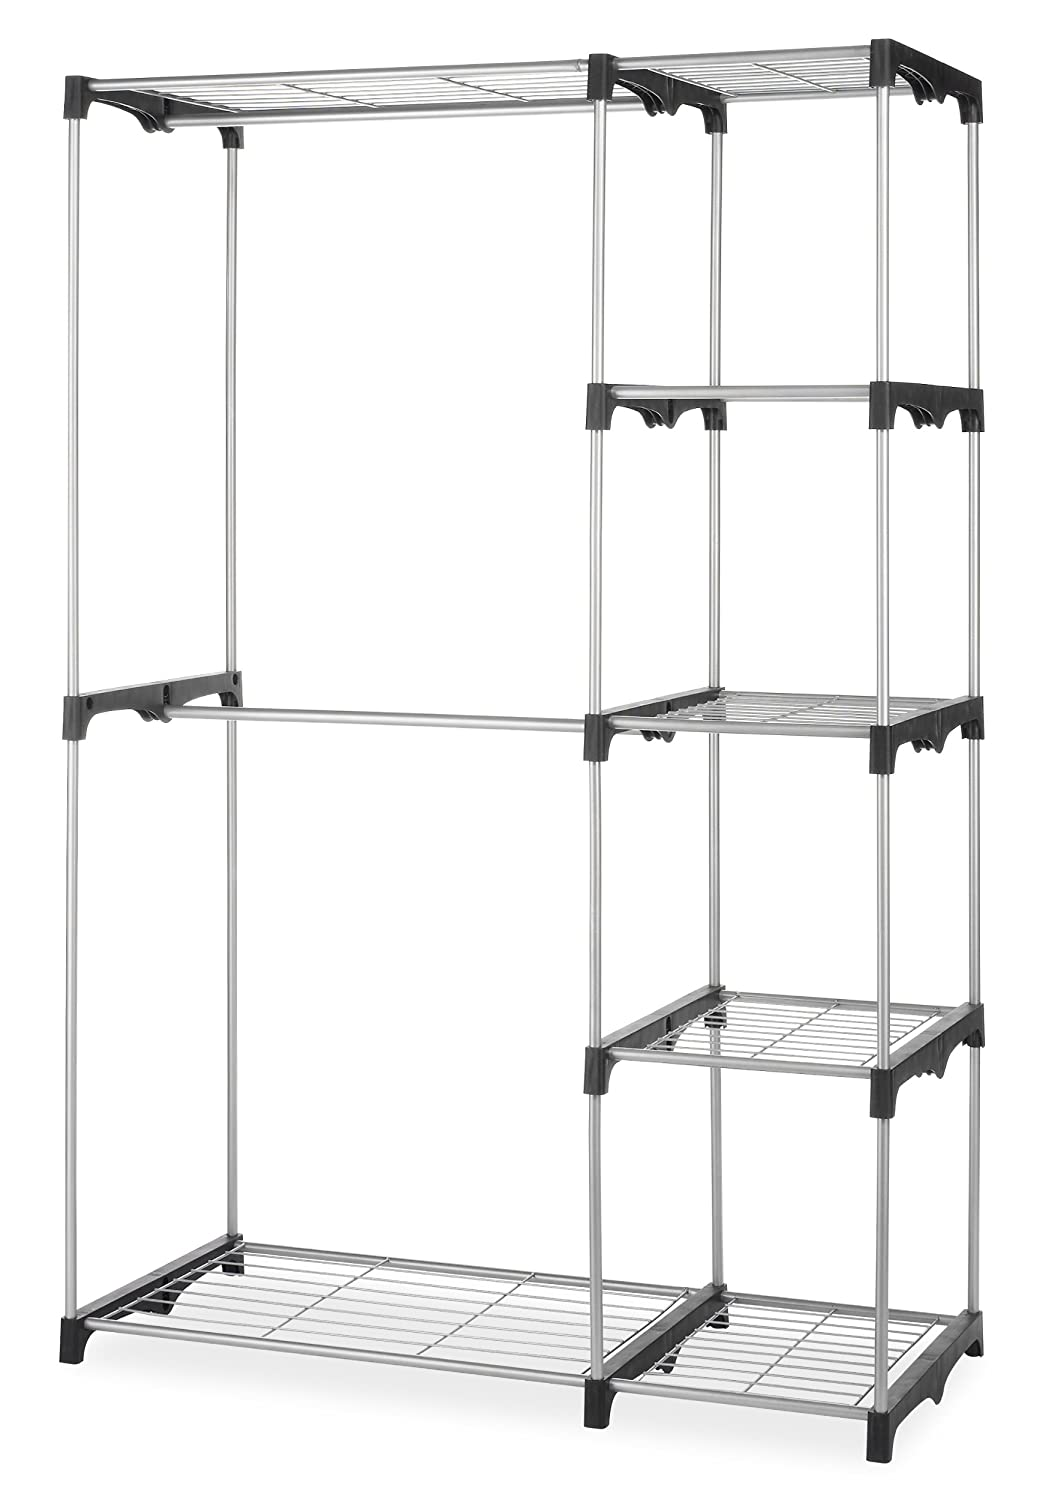 whitmor double rod closet system organizer wardrobe portable clothes rack holder ebay. Black Bedroom Furniture Sets. Home Design Ideas